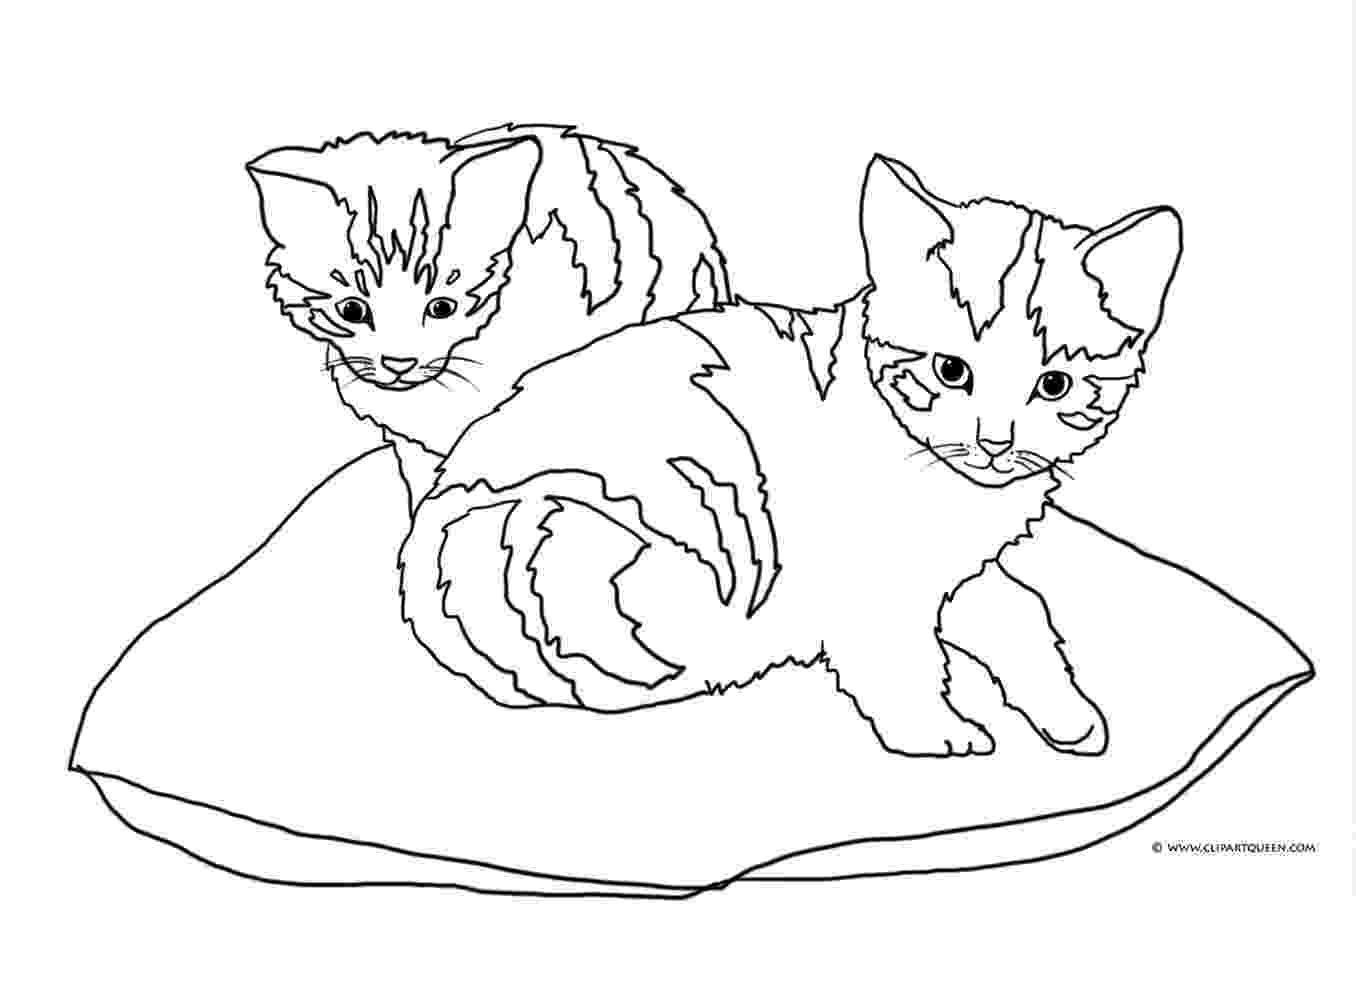 cat color pages free printable cat coloring pages for kids color cat pages 1 1